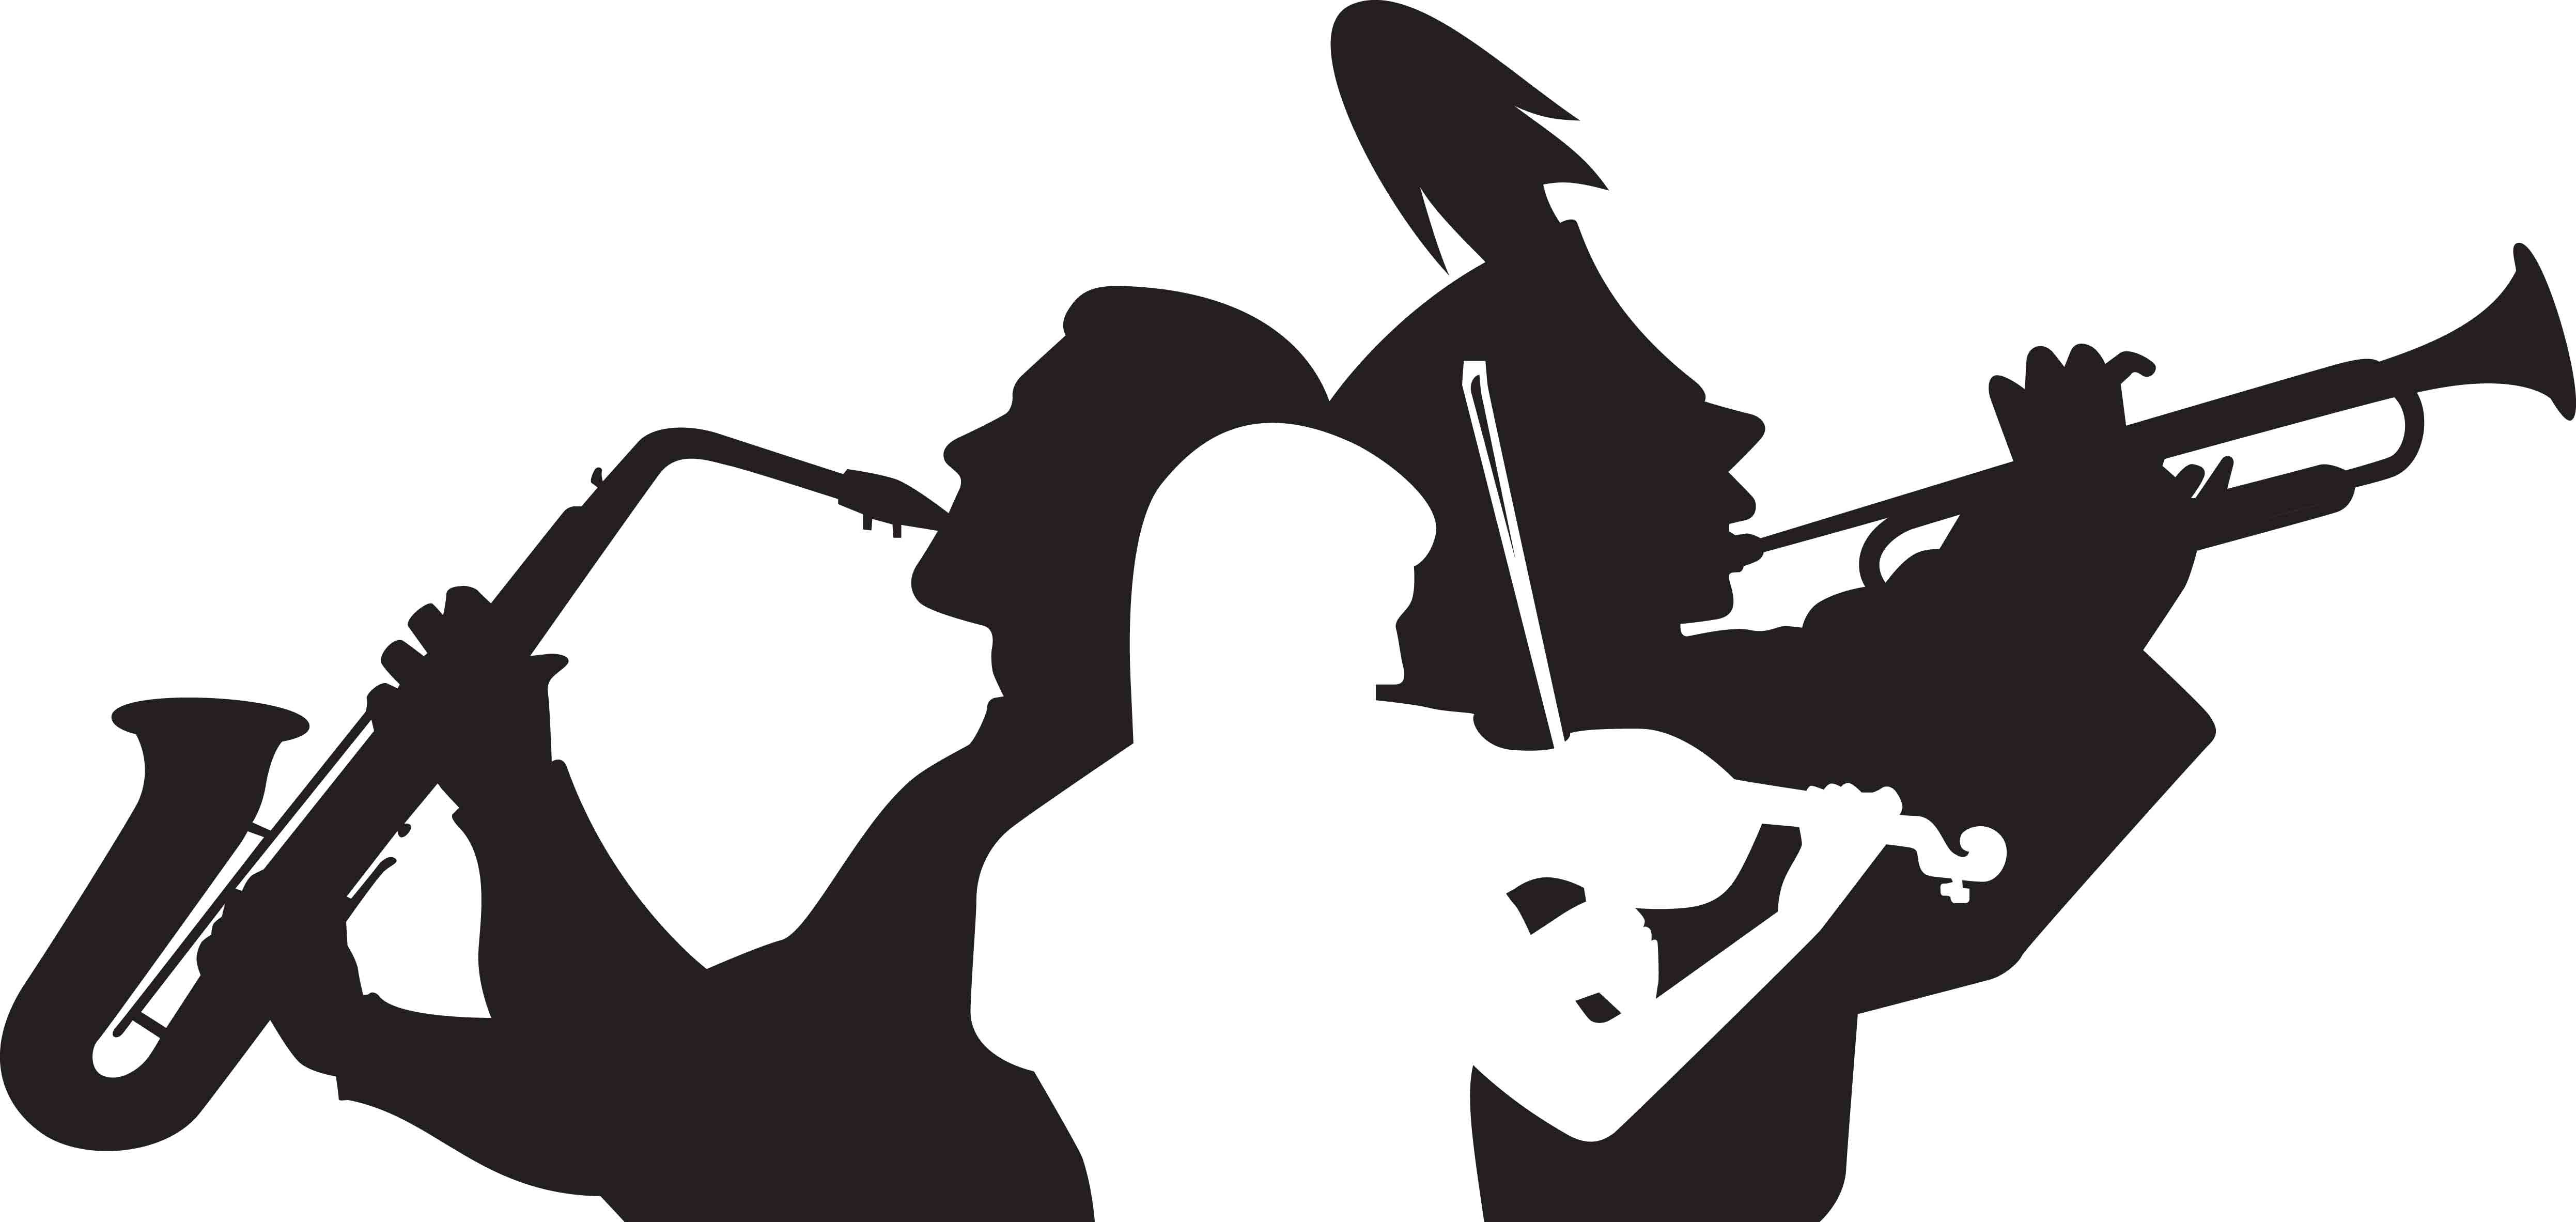 Band clipart music classroom. Silhouette marching drummers yahoo